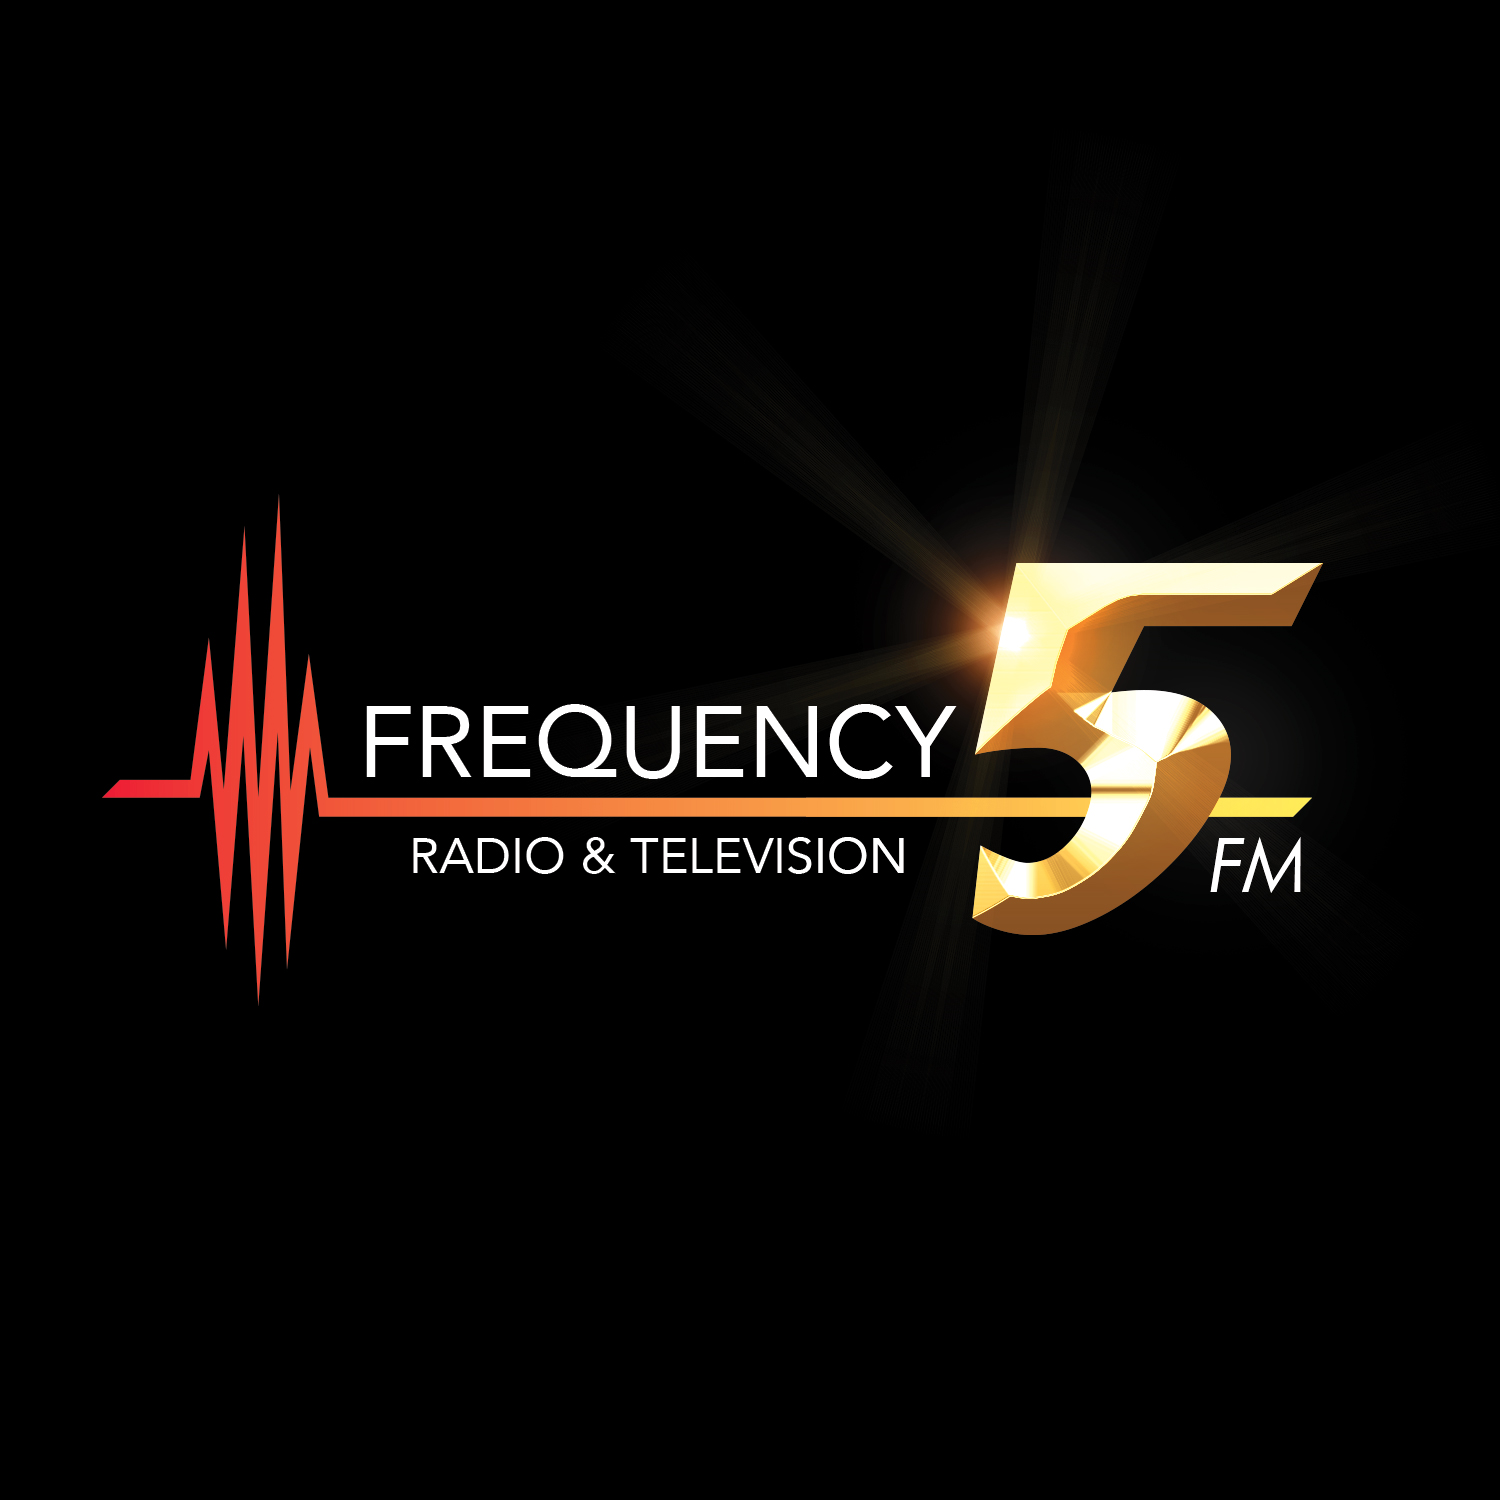 frequency5fm